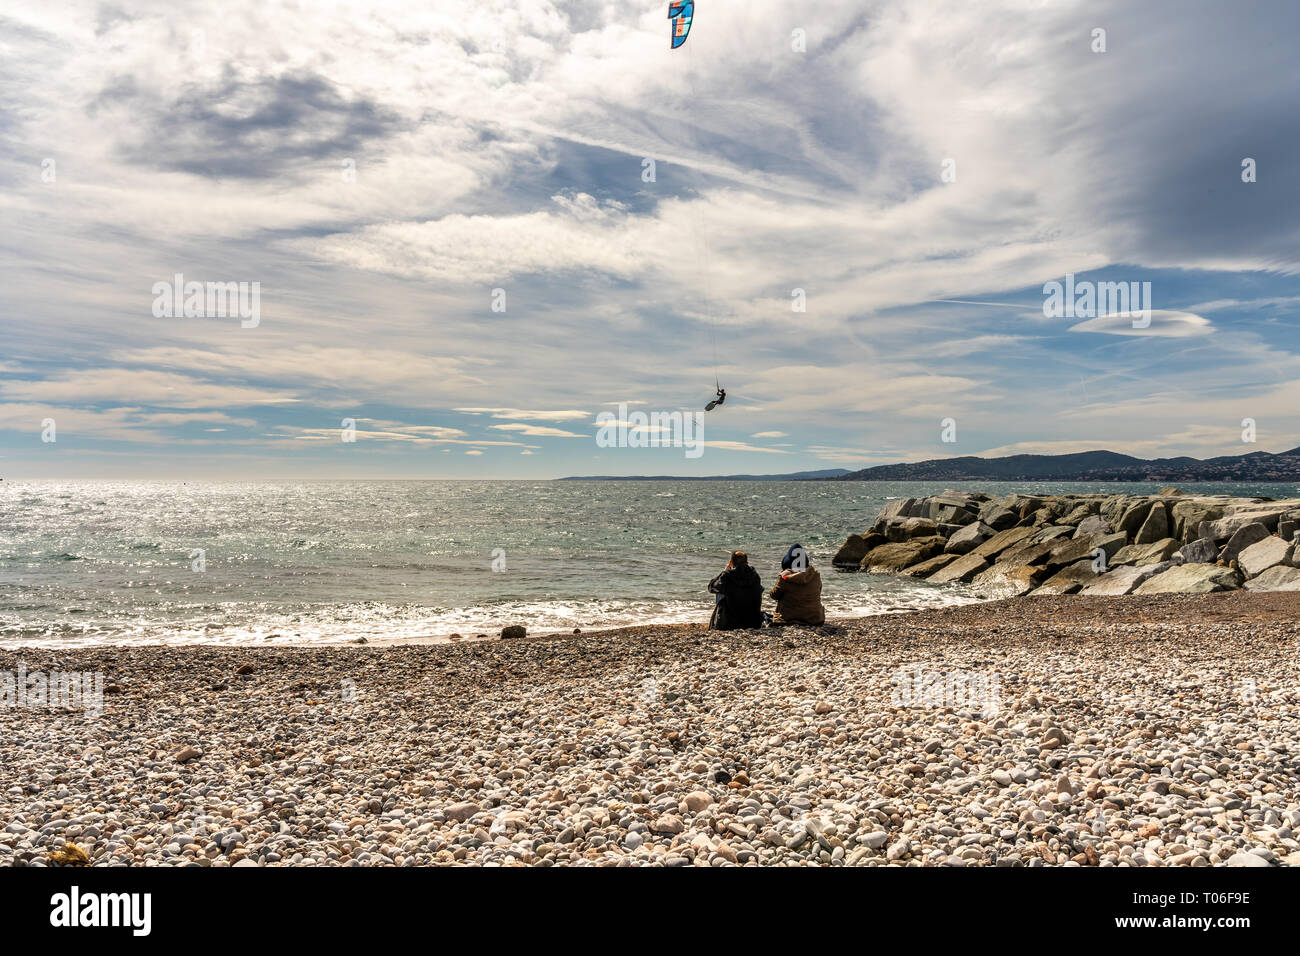 people watching a kite surfer in actionon french riviera in saint raphael, france Stock Photo